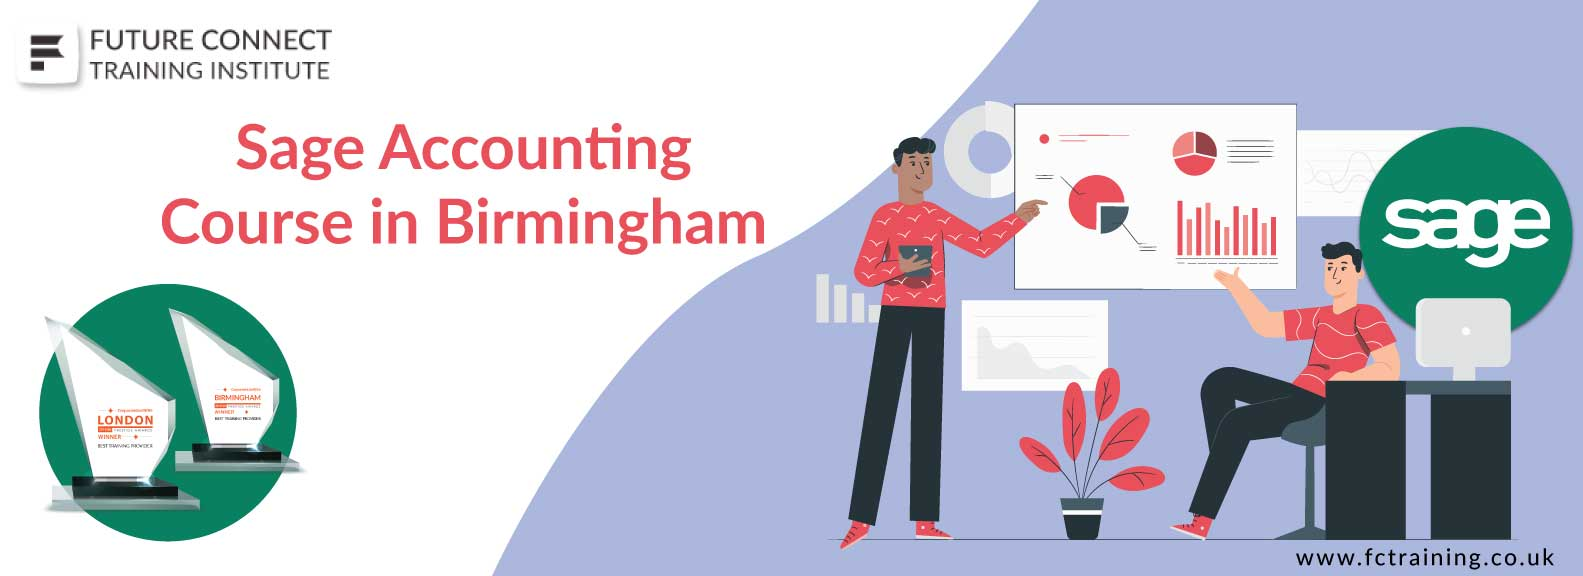 Sage Accounting Course in Birmingham